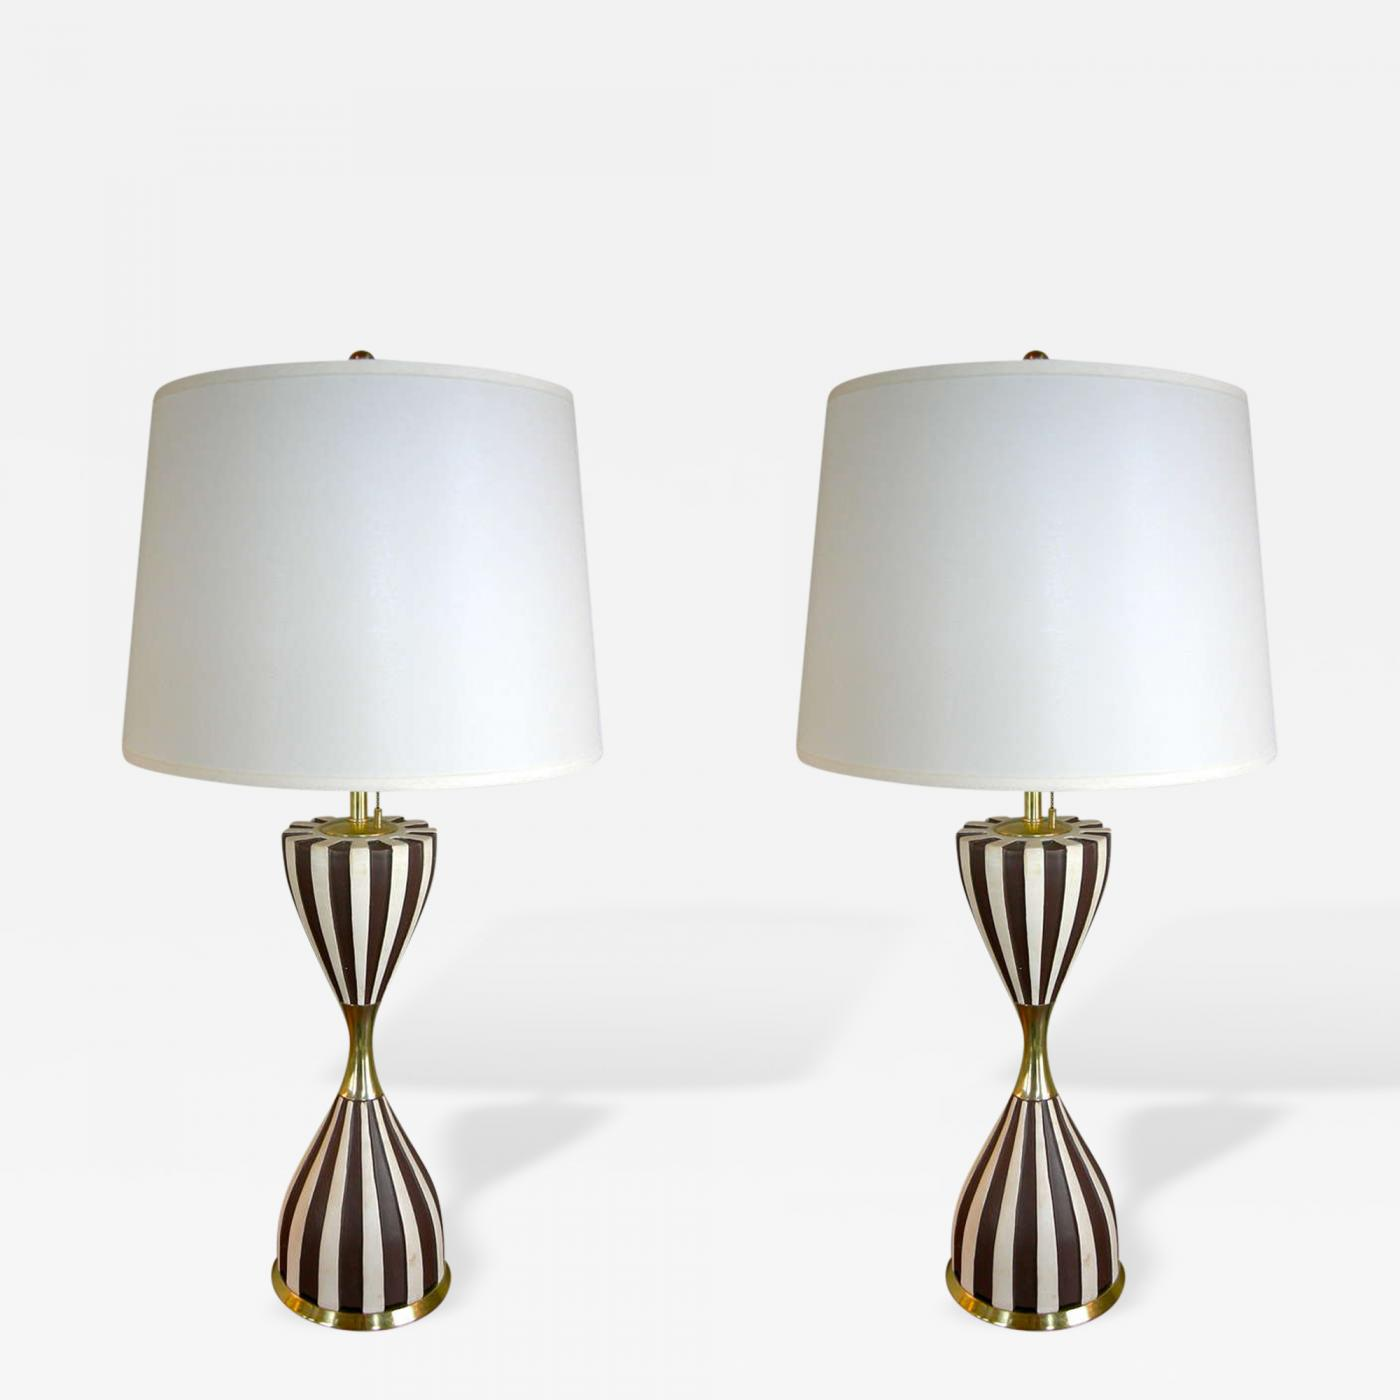 Gerald thurston pair of harlequin table lamps by gerald thurston listings furniture lighting table lamps gerald thurston geotapseo Image collections